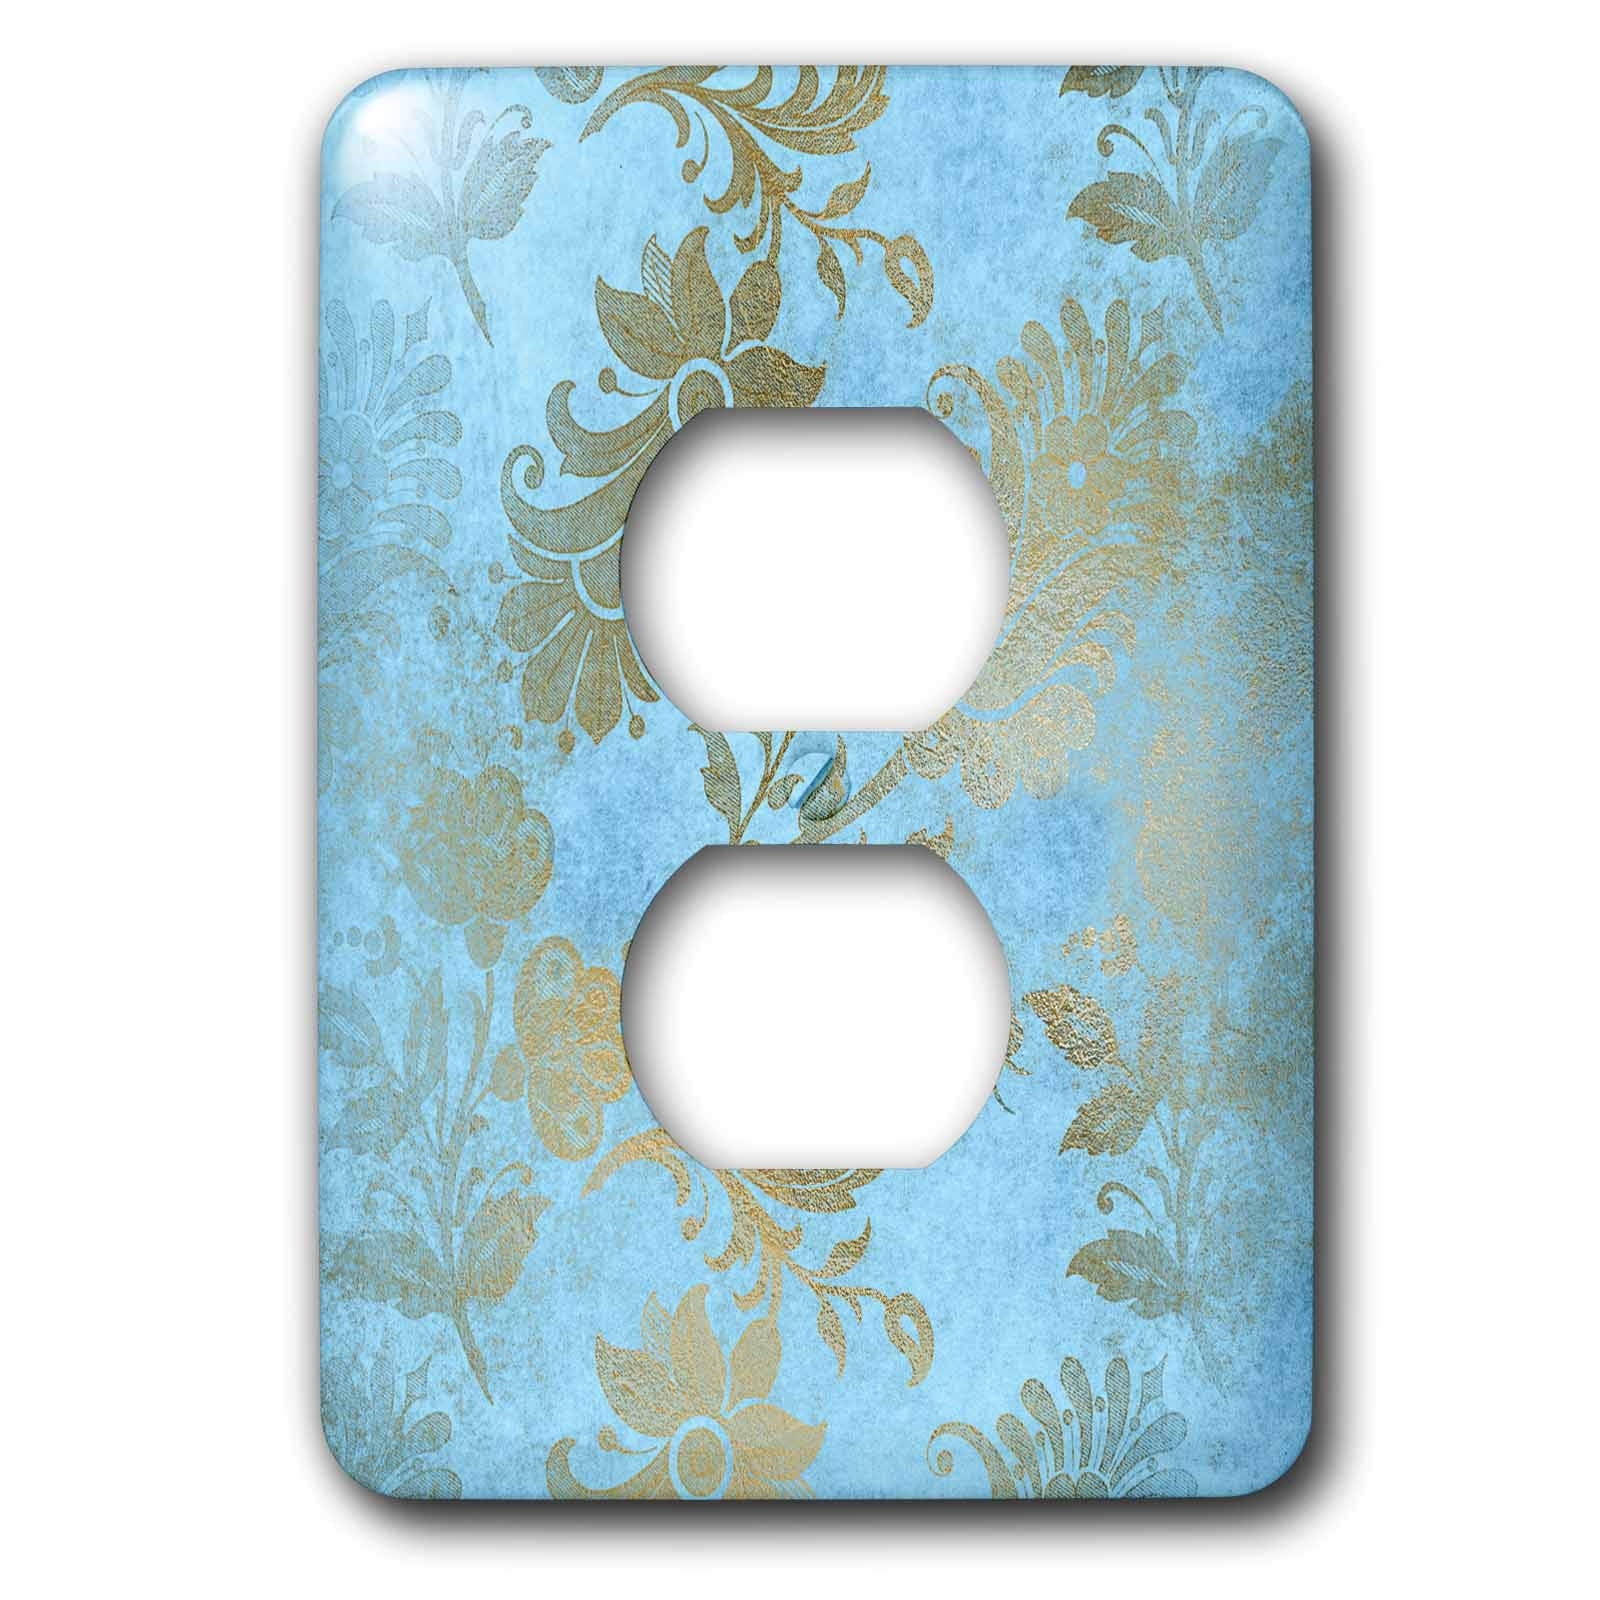 3dRose Uta Naumann Faux Glitter Pattern - Image of Sky Blue and Gold Metal Foil Vintage Grunge Luxury Floral Pattern - Light Switch Covers - 2 plug outlet cover (lsp_290170_6)